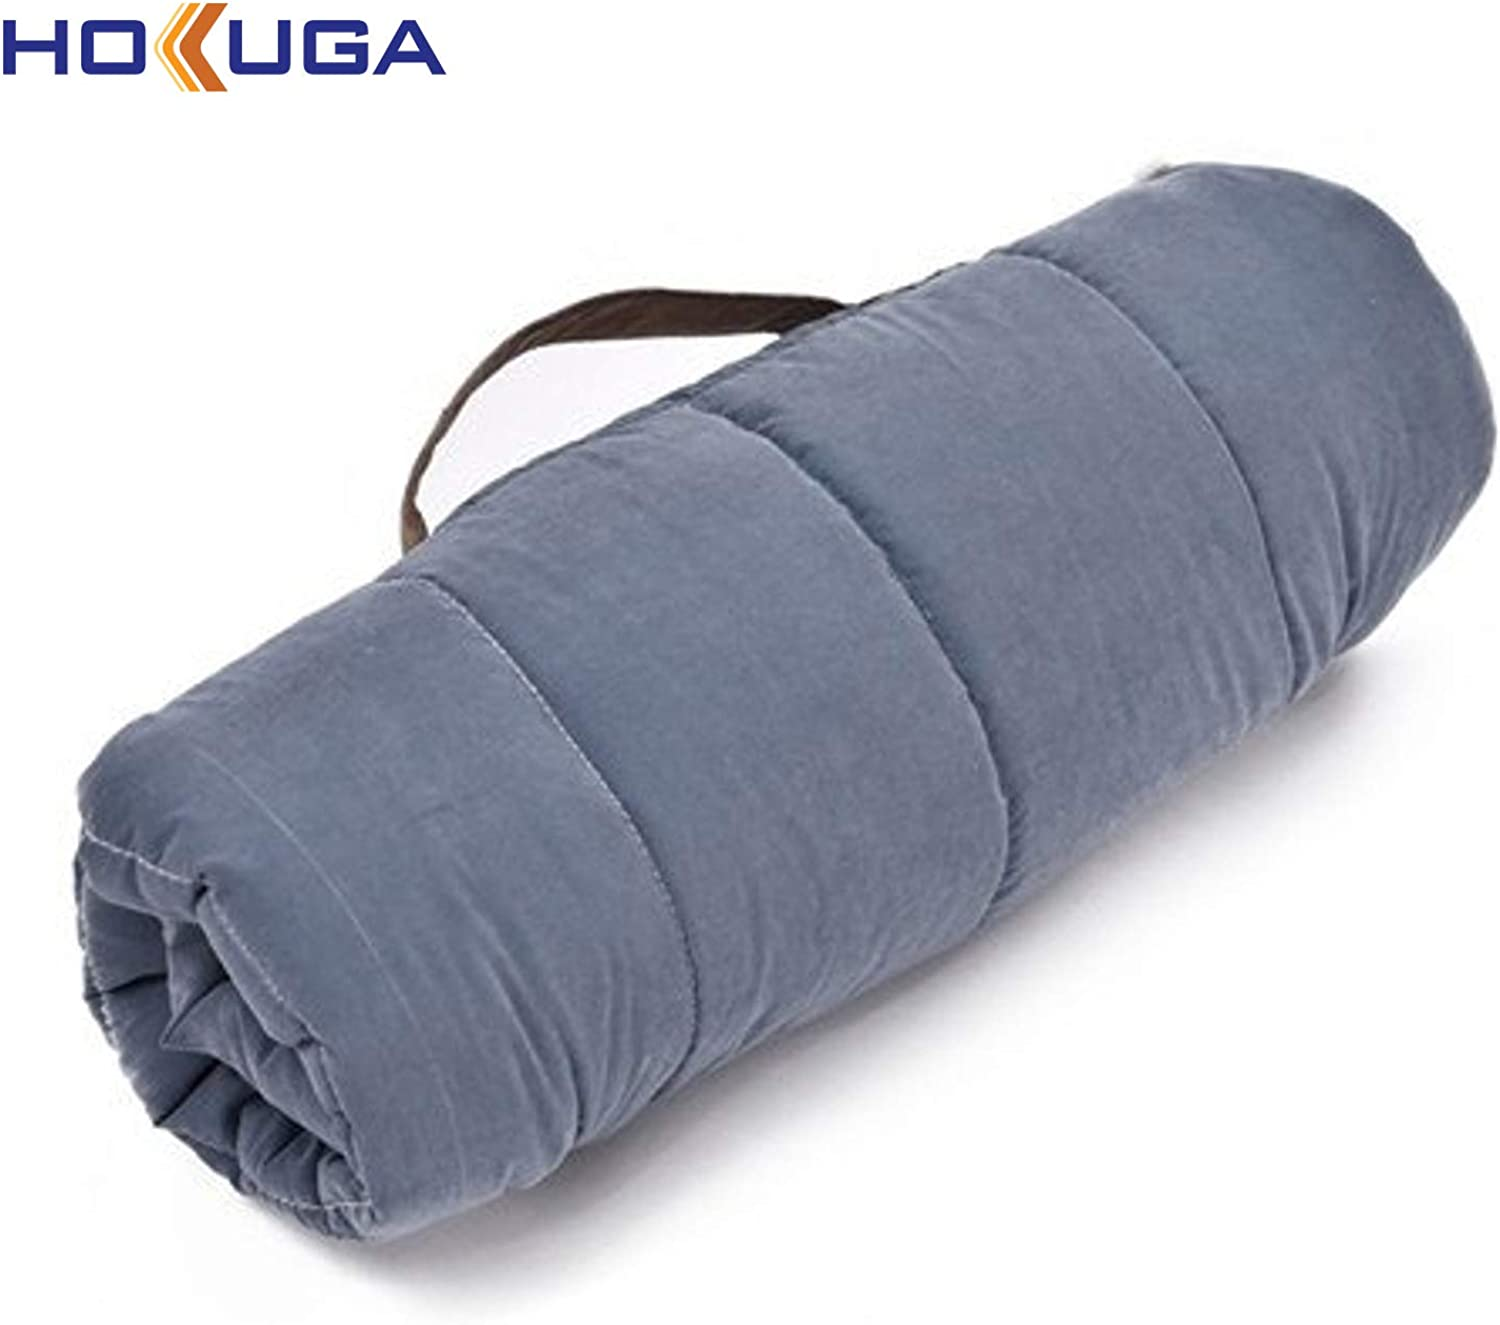 HOKUGA The Pet Mat  for Dog Foldable Dog Cat Mats Soft Portable Pet Cushion Convenience Carry Puppy Big Bed Warm Thick Travel Essential